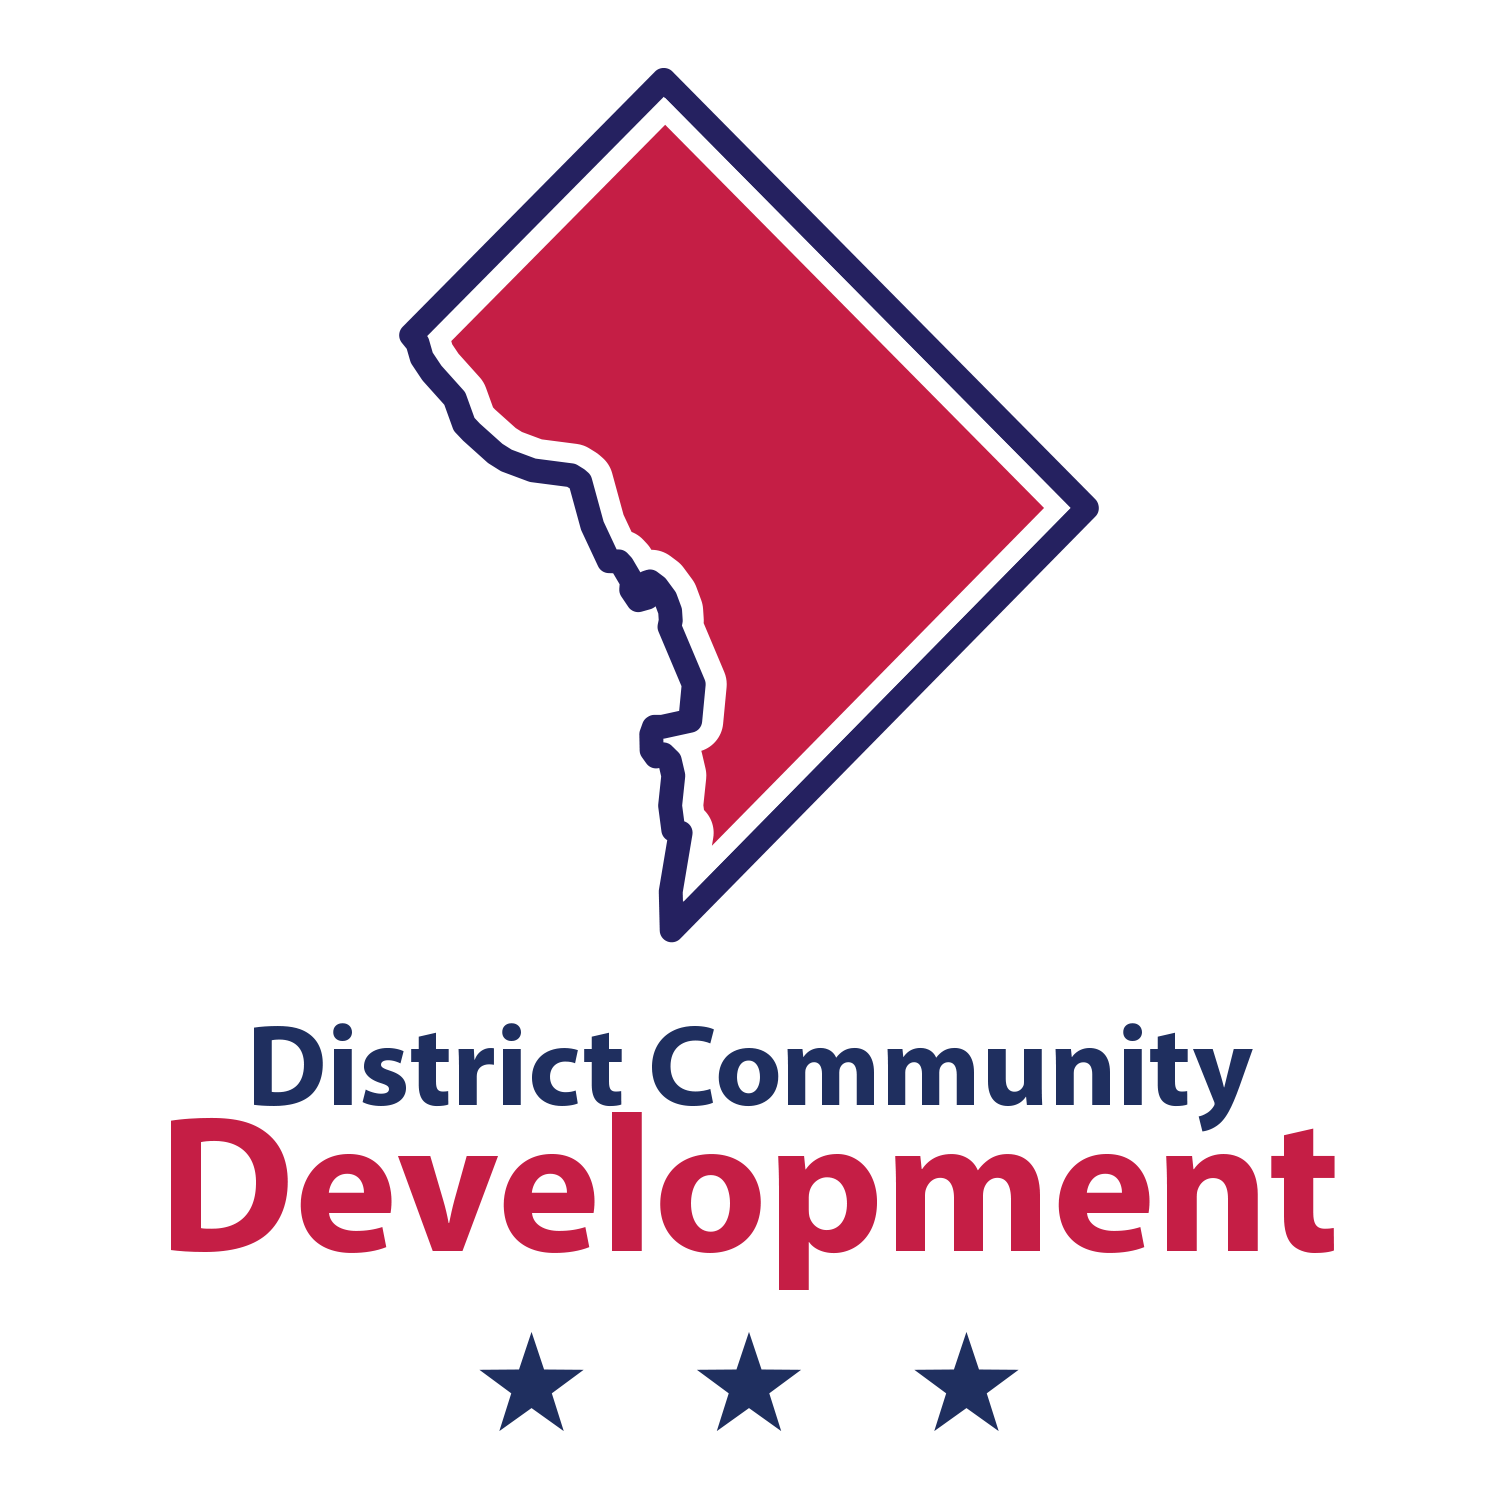 District Community Development